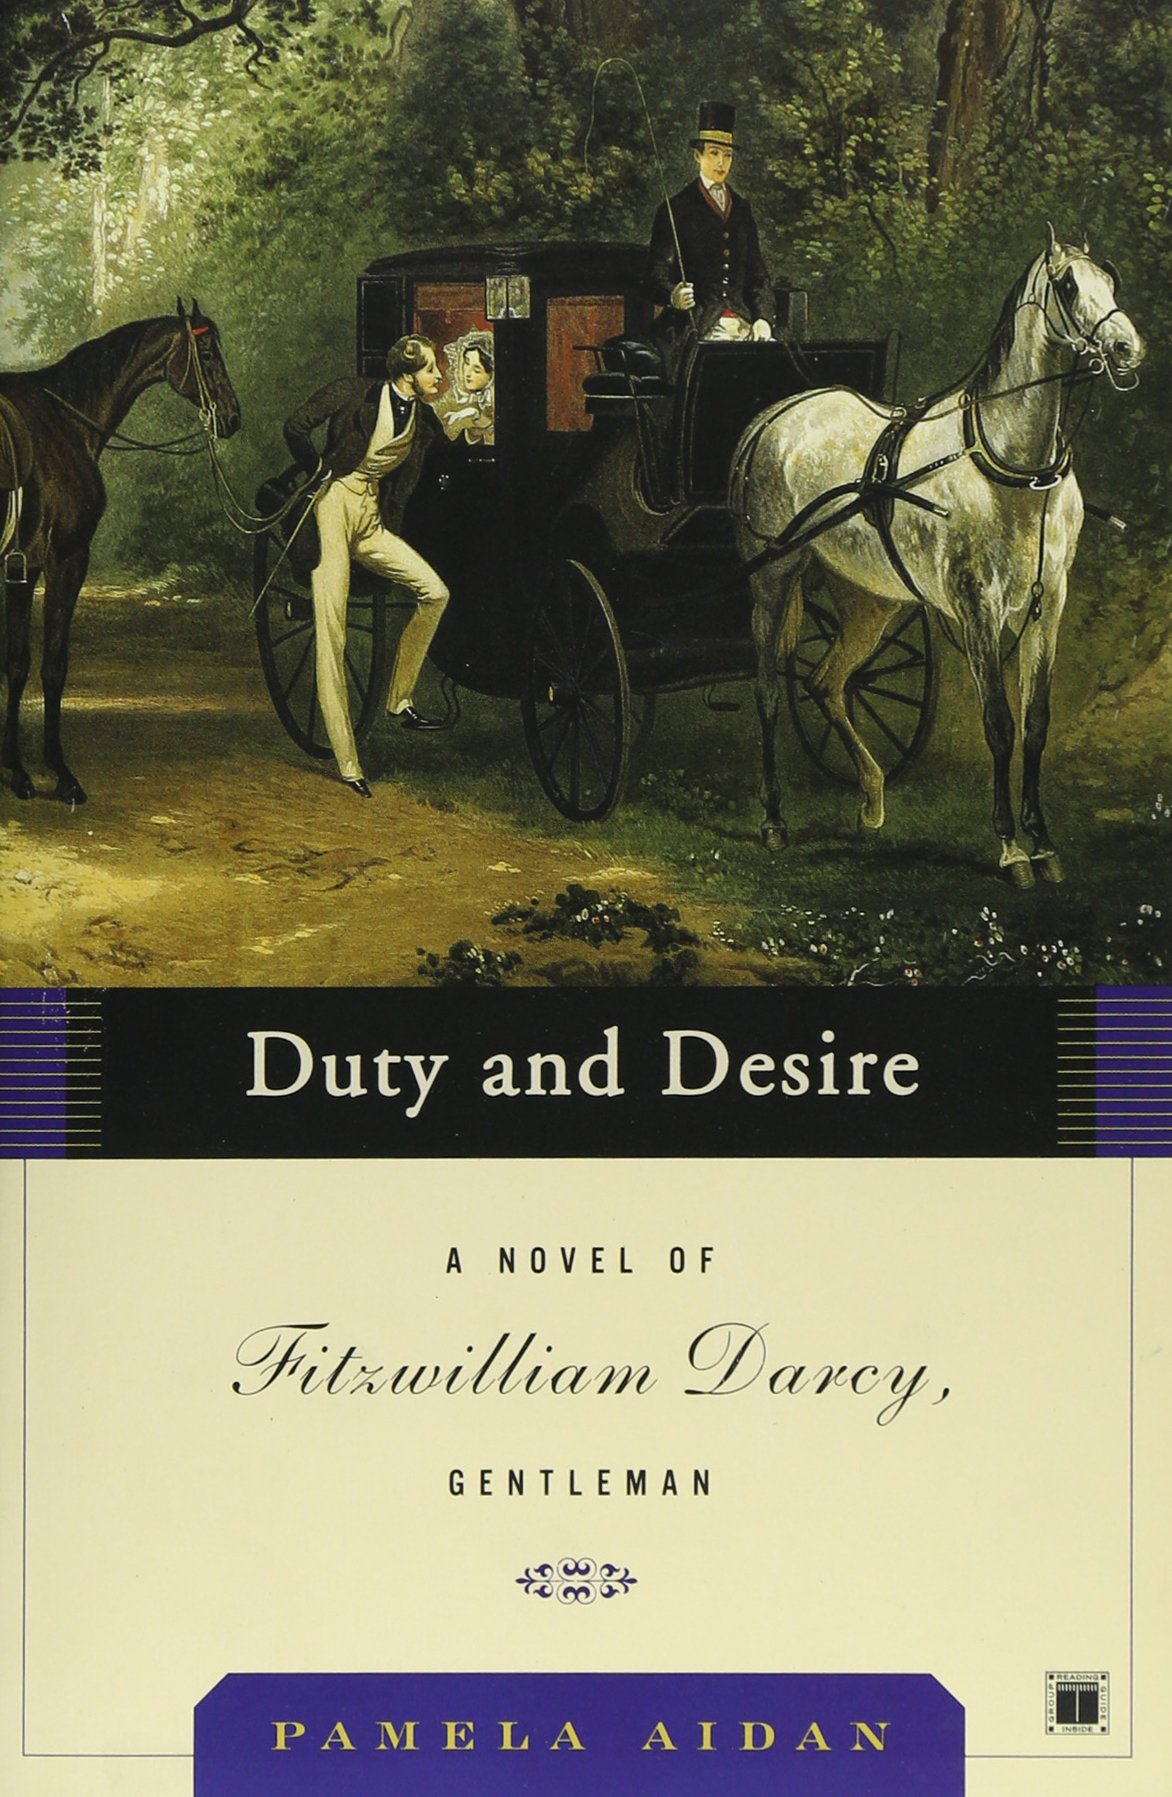 Duty and desire a novel of fitzwilliam darcy gentleman pamela duty and desire a novel of fitzwilliam darcy gentleman pamela aidan 9780743291361 amazon books fandeluxe Gallery